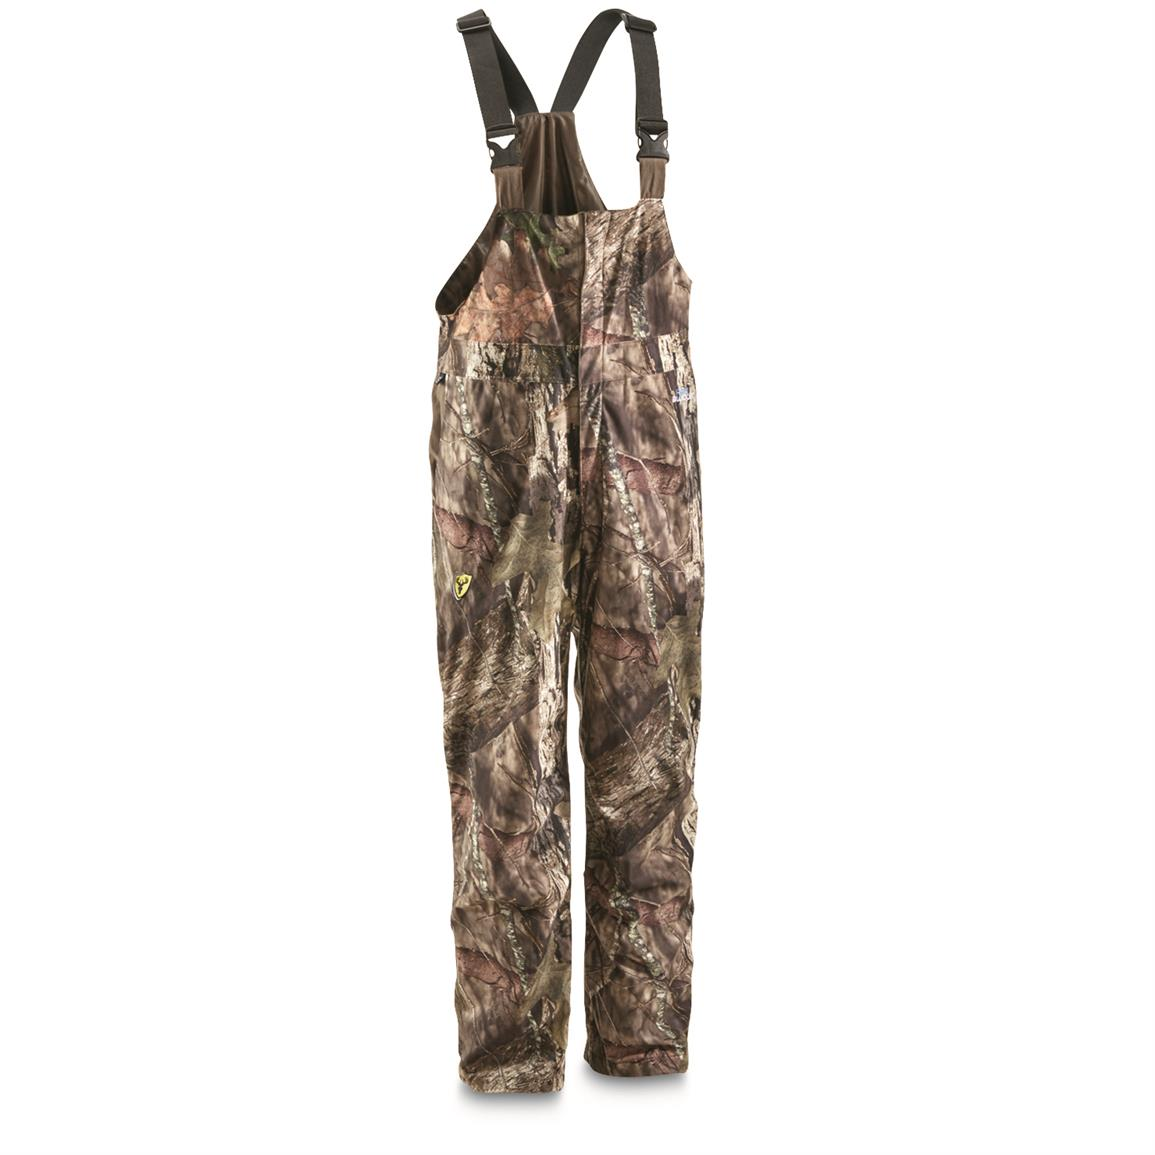 ScentBlocker Drencher Men's Hunting Bib Overalls, Mossy Oak Break-Up Country